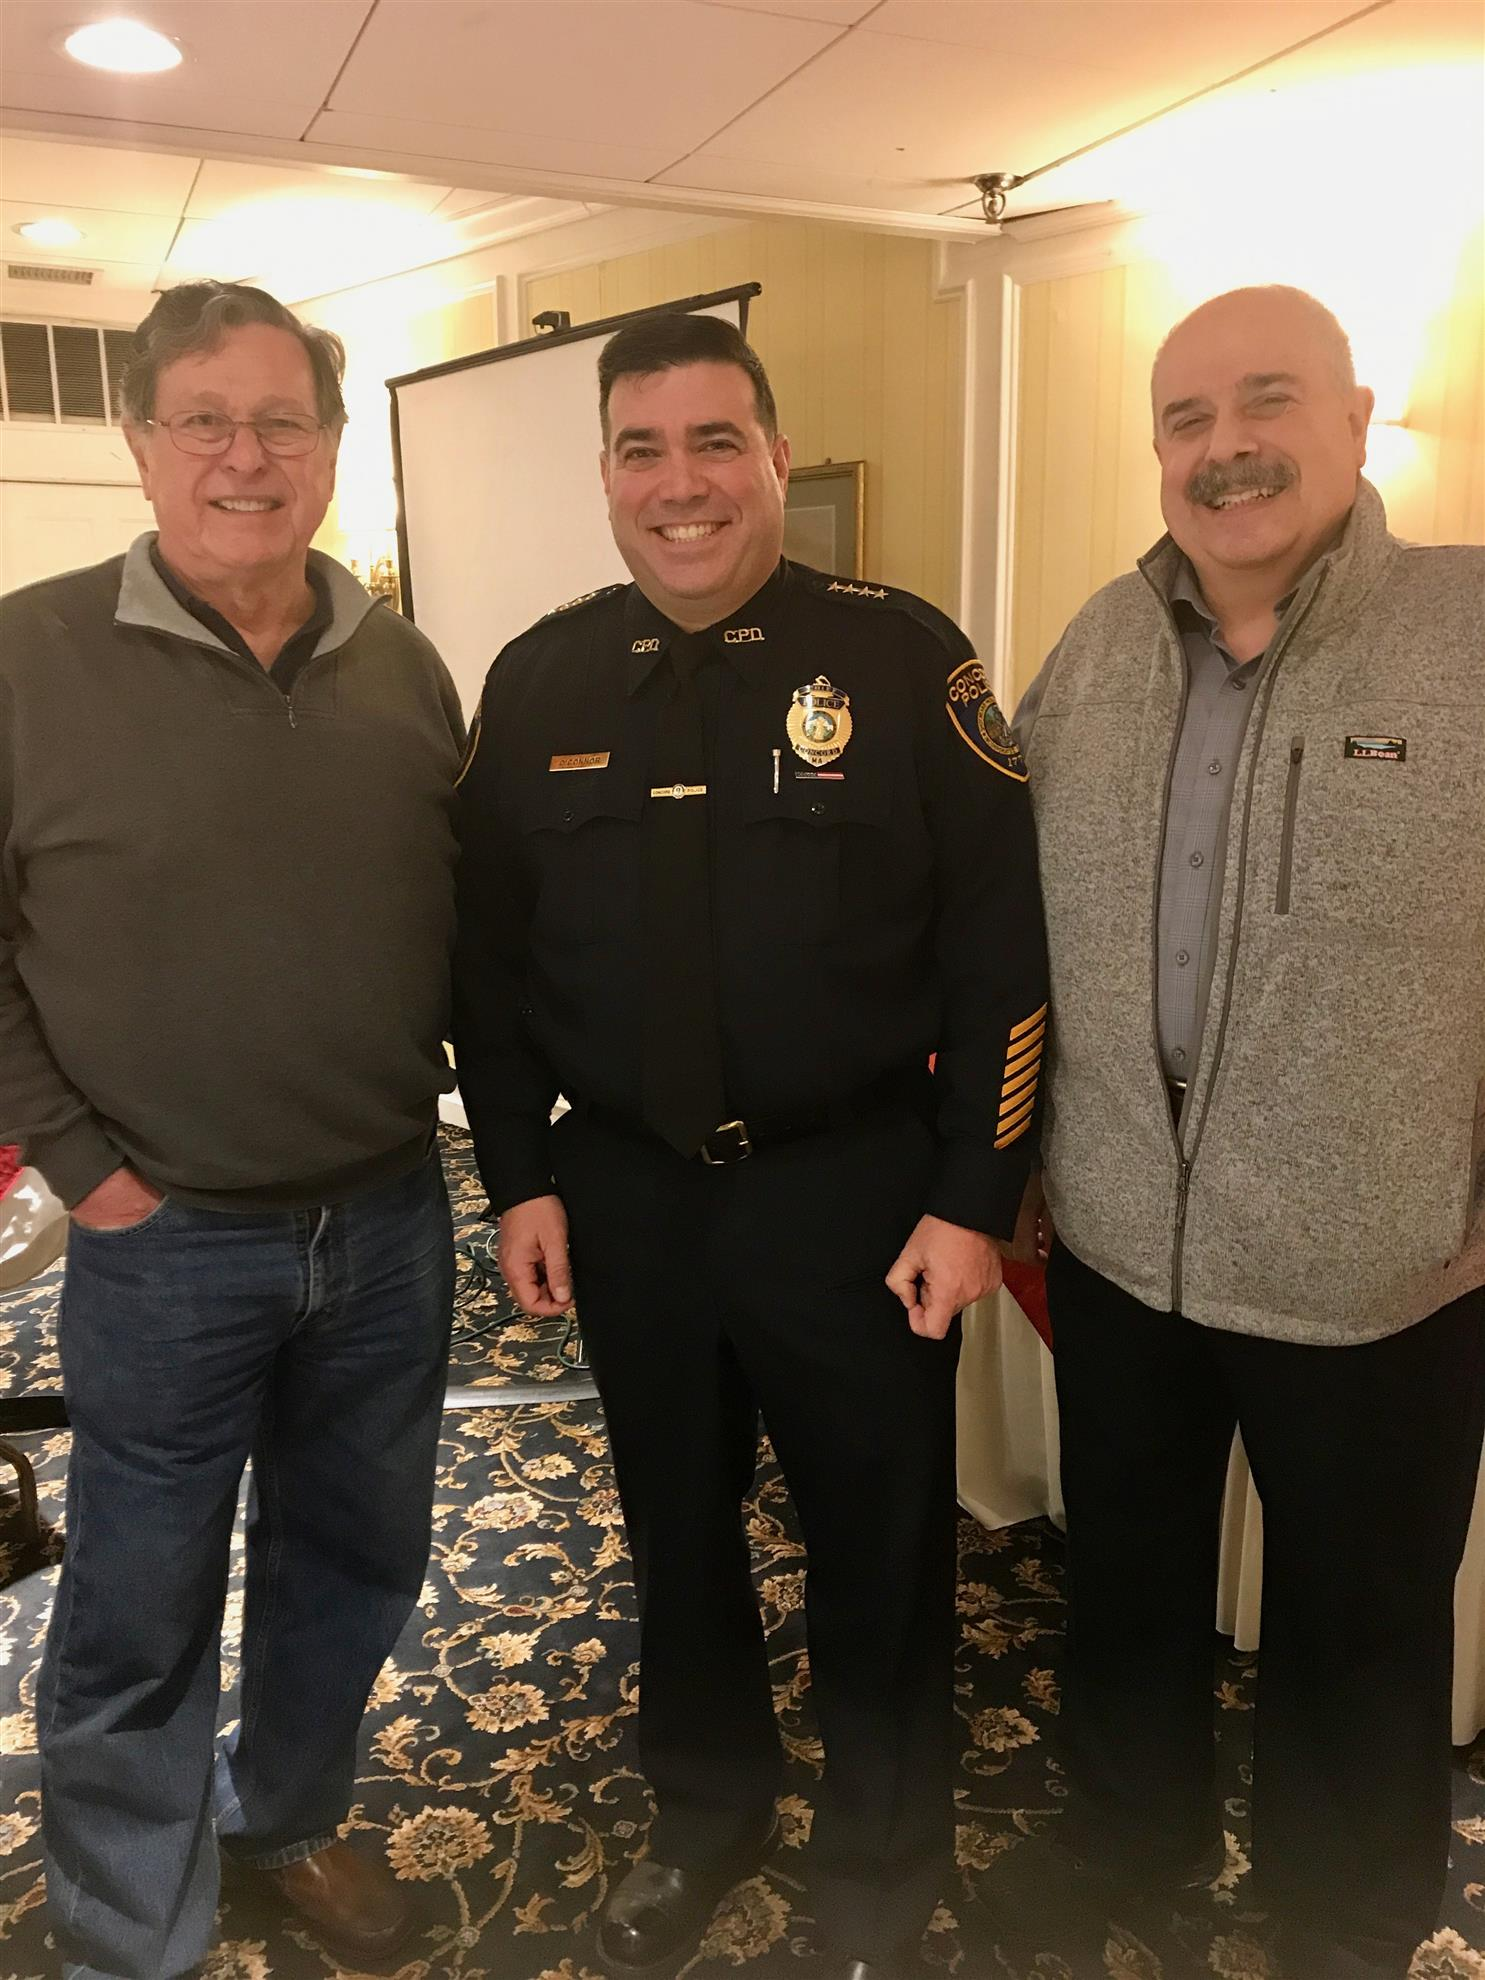 c9babbd8784 ... an outstanding Police Department ready to assist its residents with  skill and compassion. Photo  RC of Concord Pres. Henry Dane with Chief  O Connor